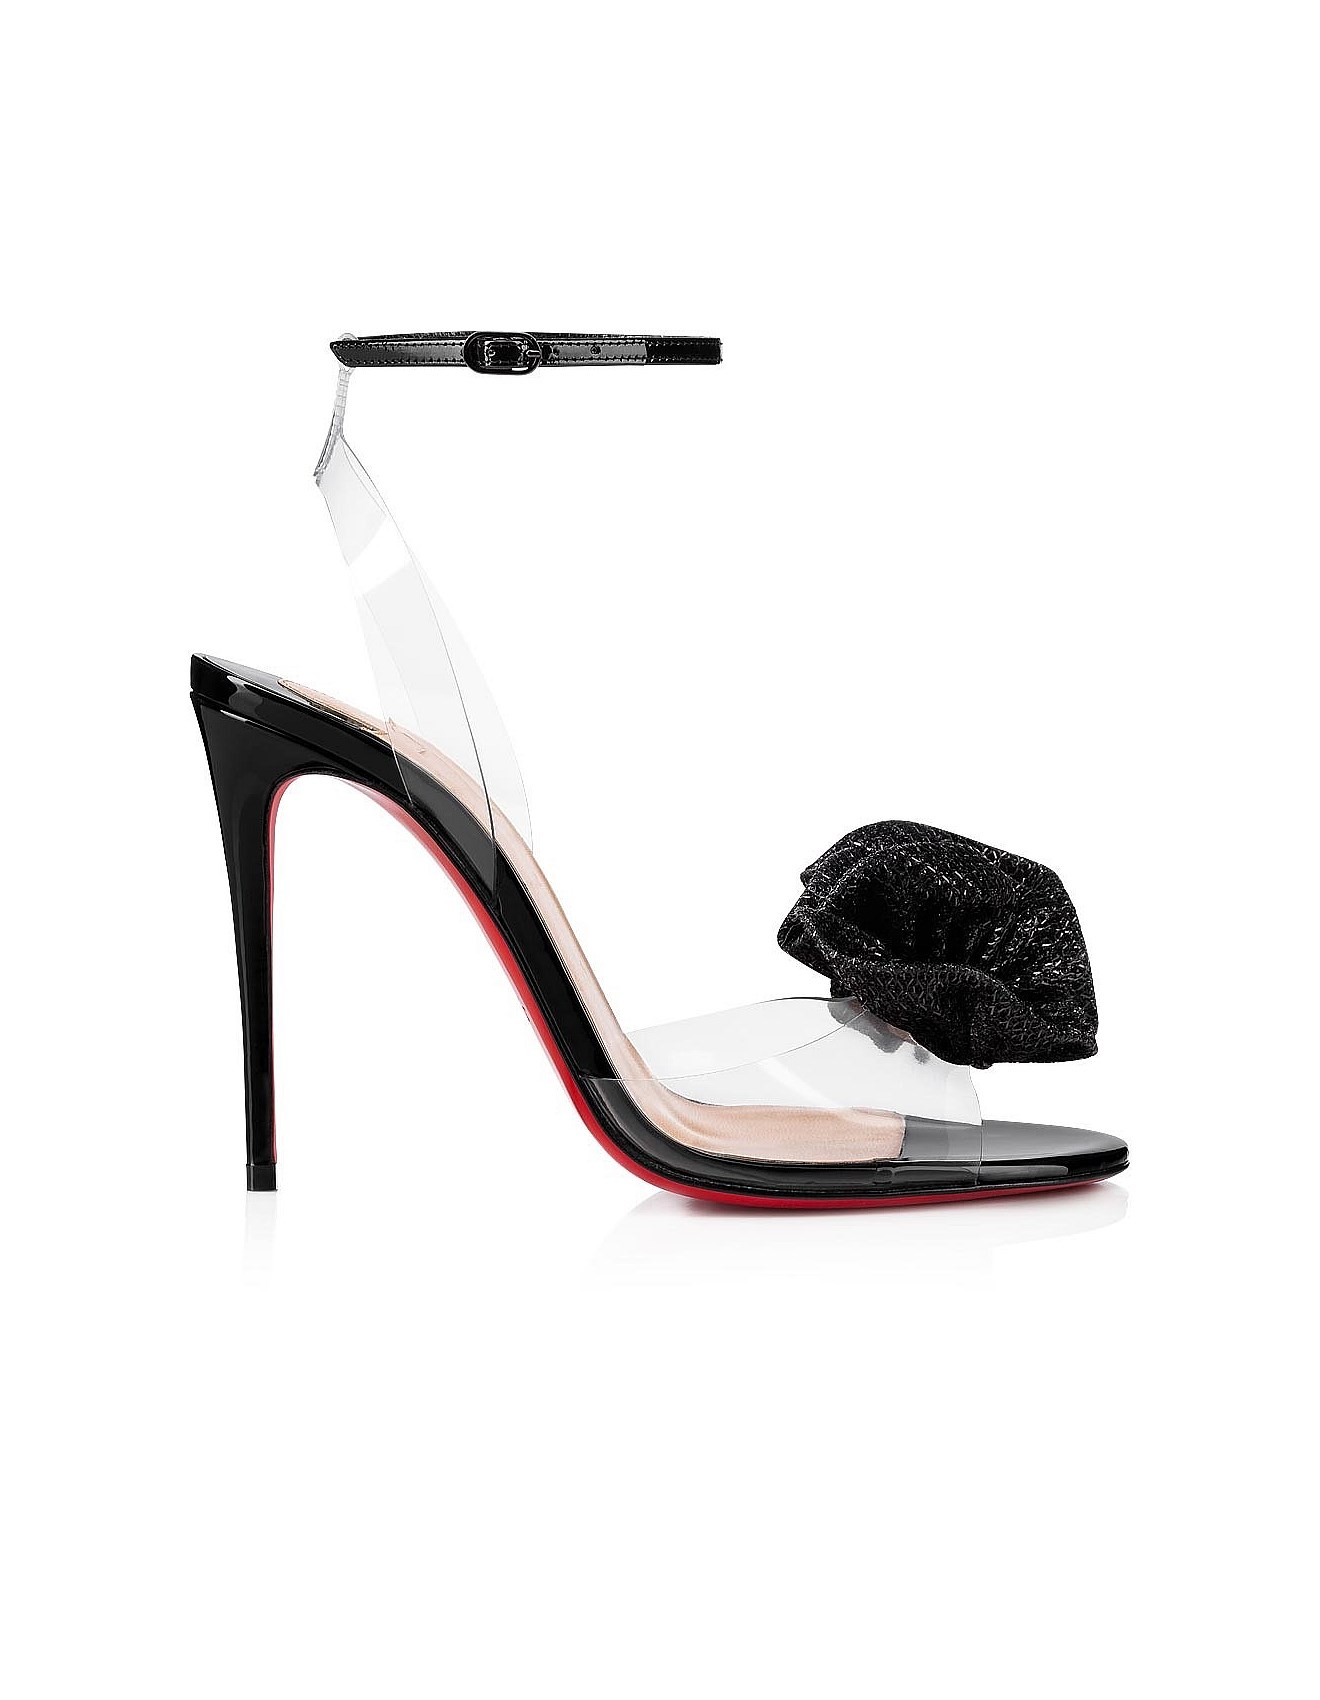 christian louboutin david jones